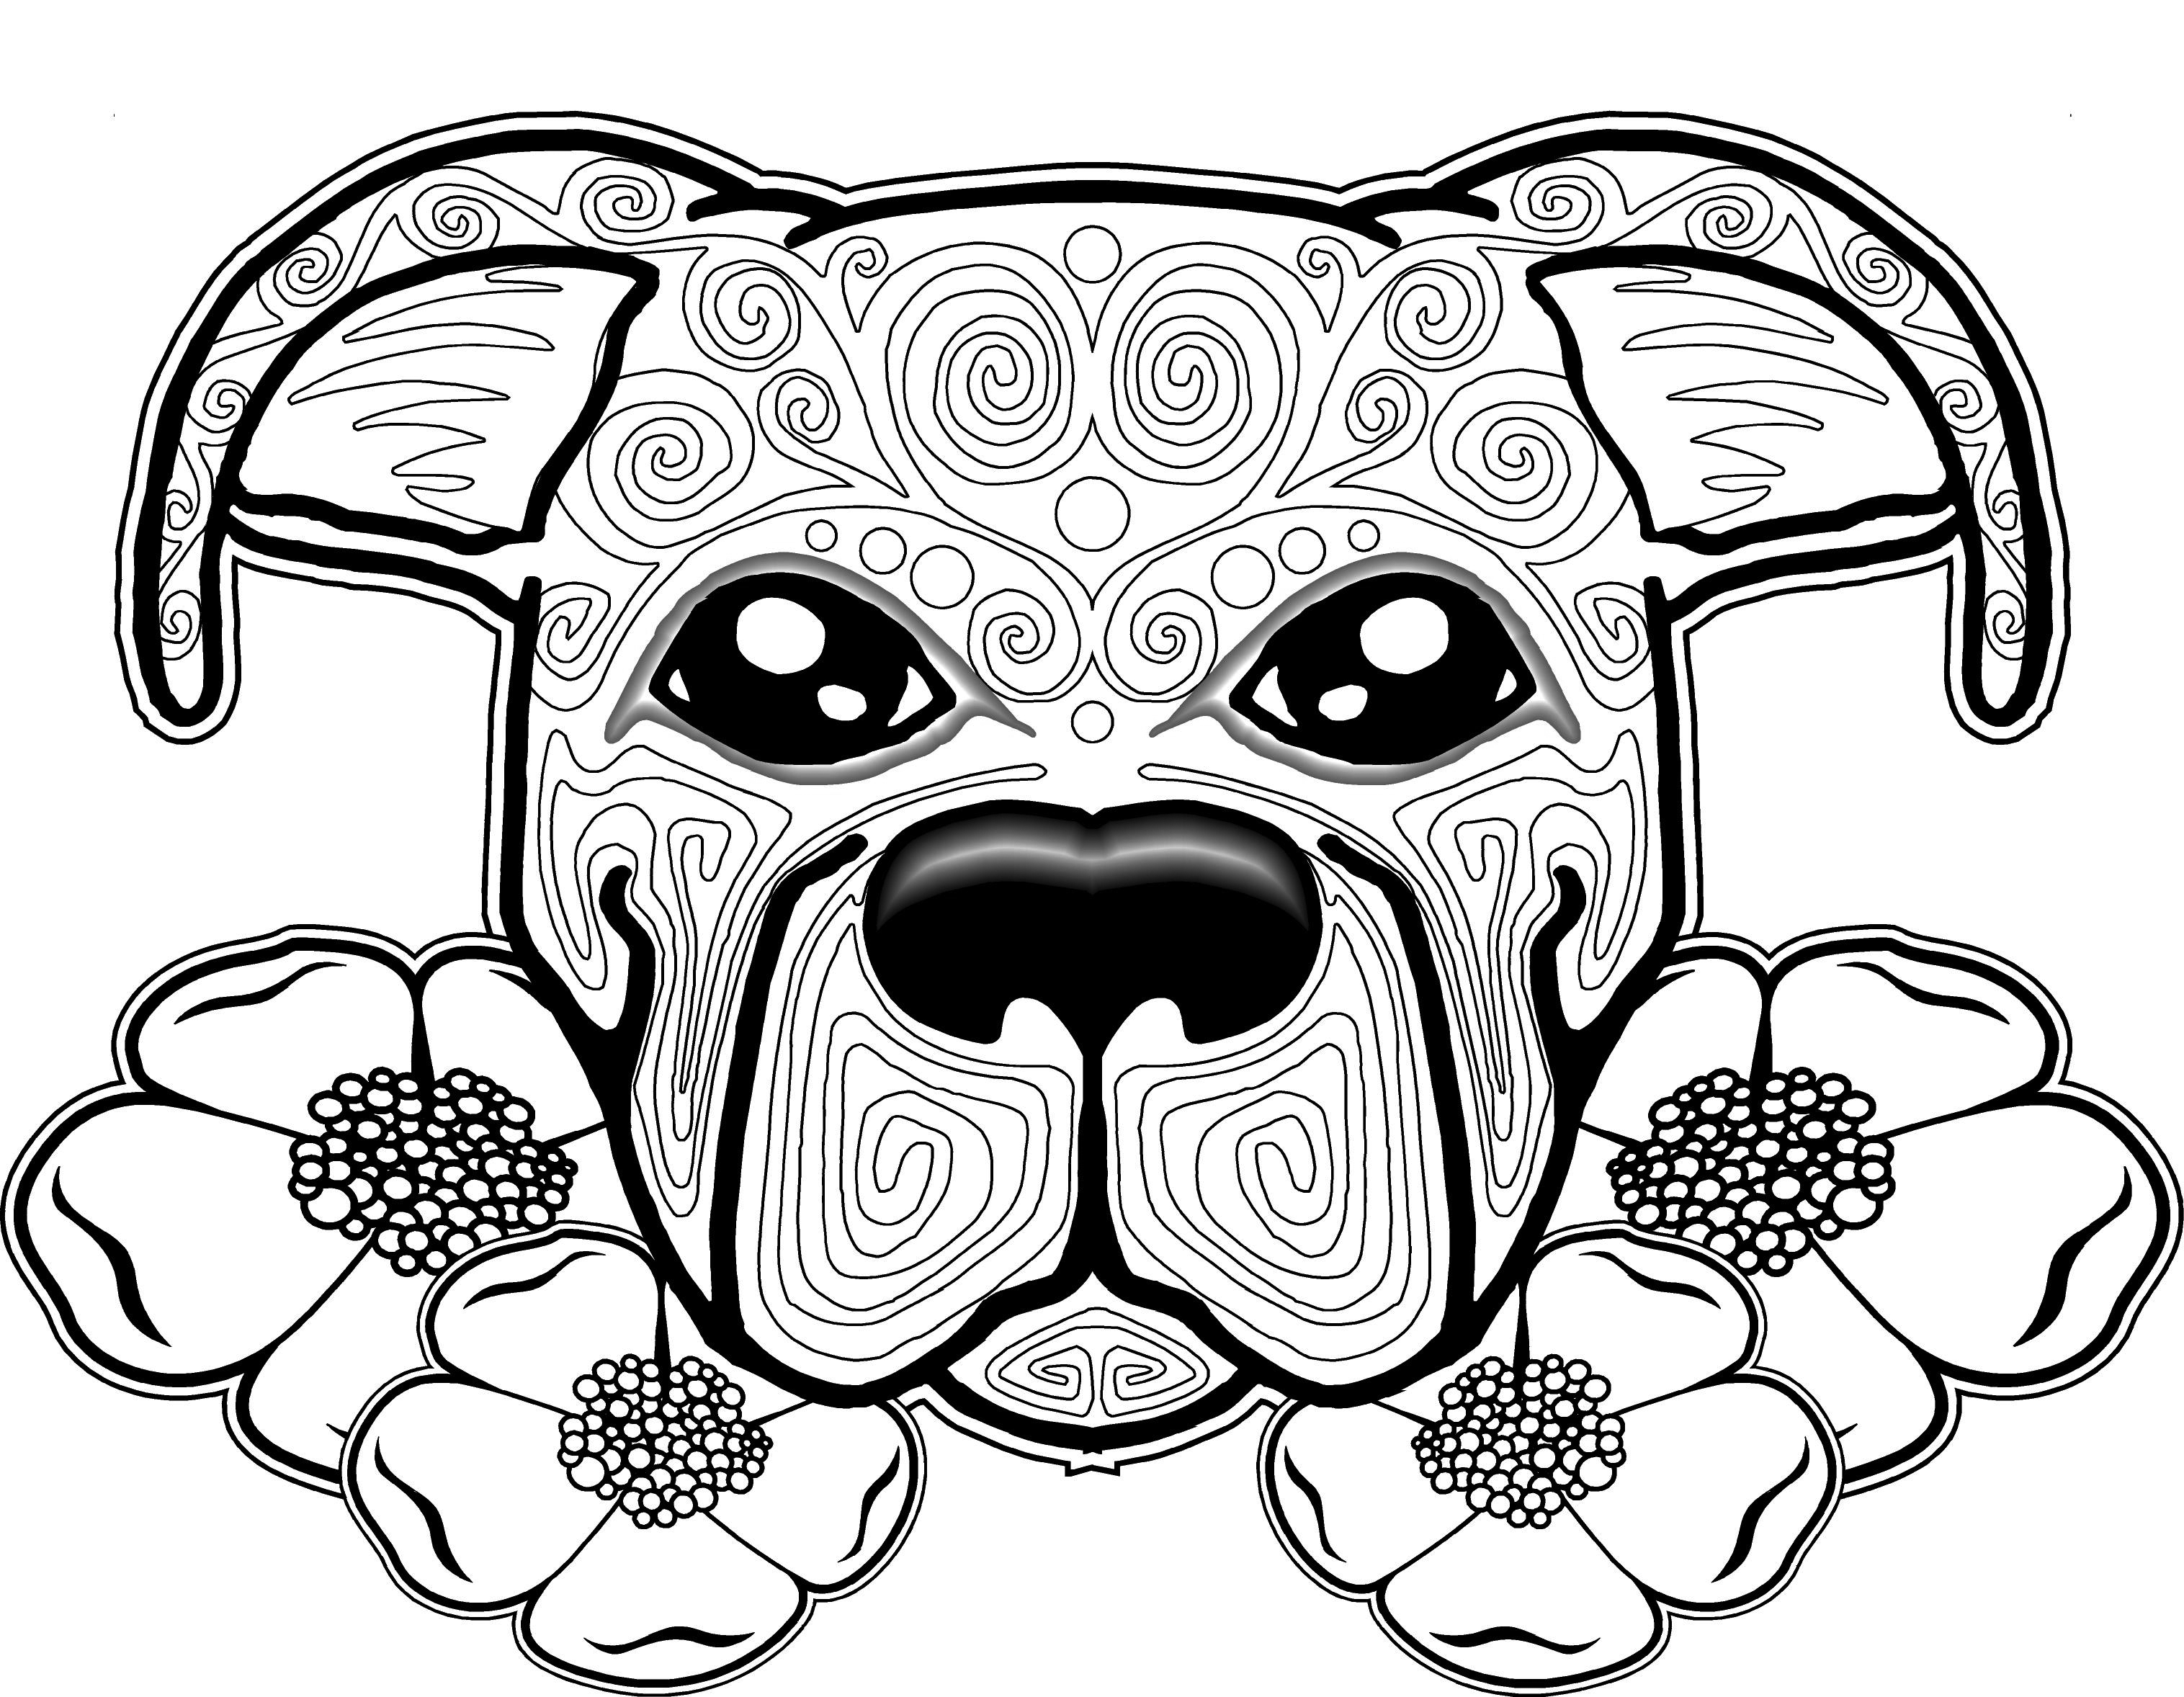 coloring pages of dogs printable dogs coloring pages of pages dogs printable coloring